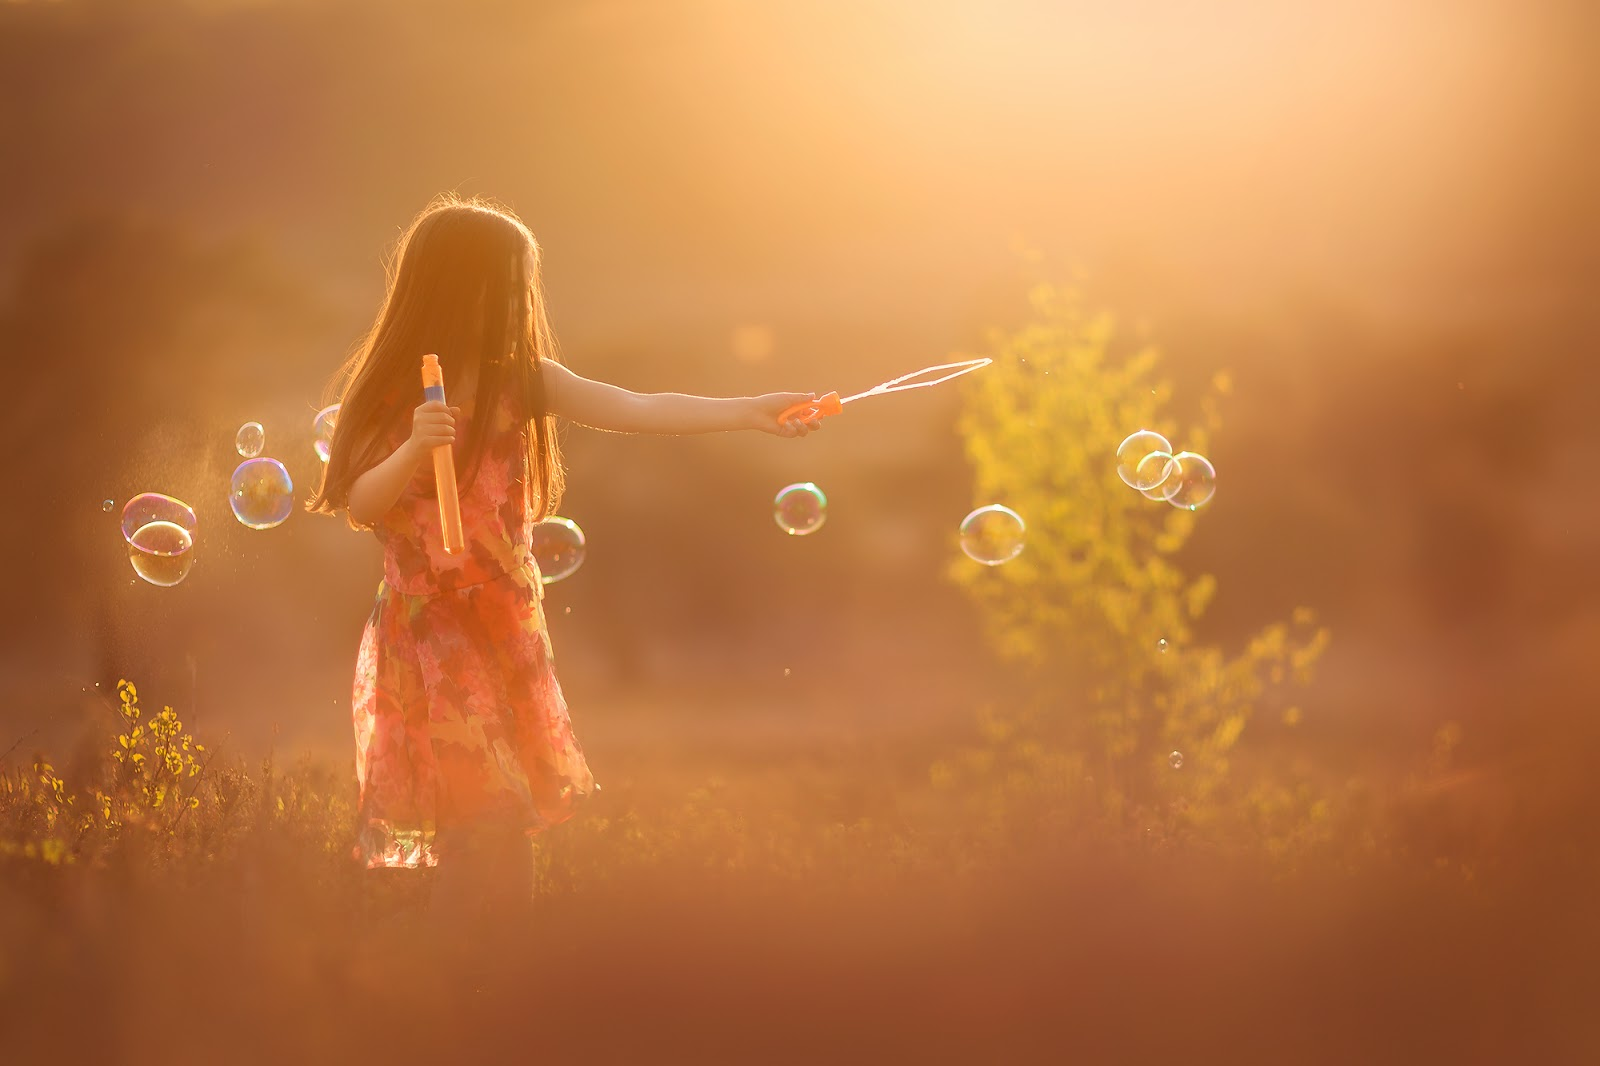 Canon portrait of a little girl with long dark hair blowing bubbles during sunset in nature by Willie Kers